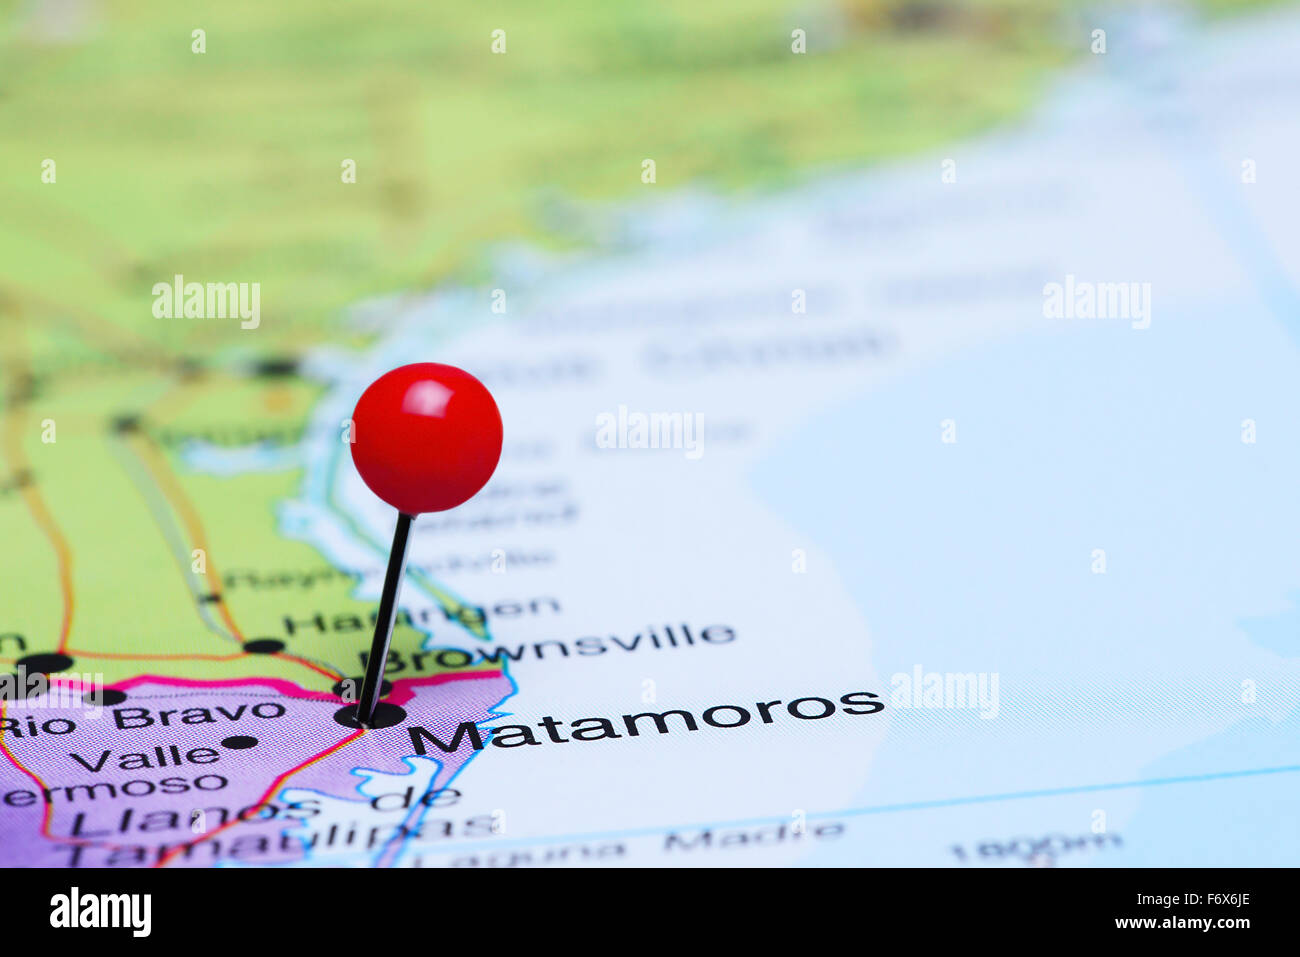 matamoros pinned on a map of mexico stock photo royalty free